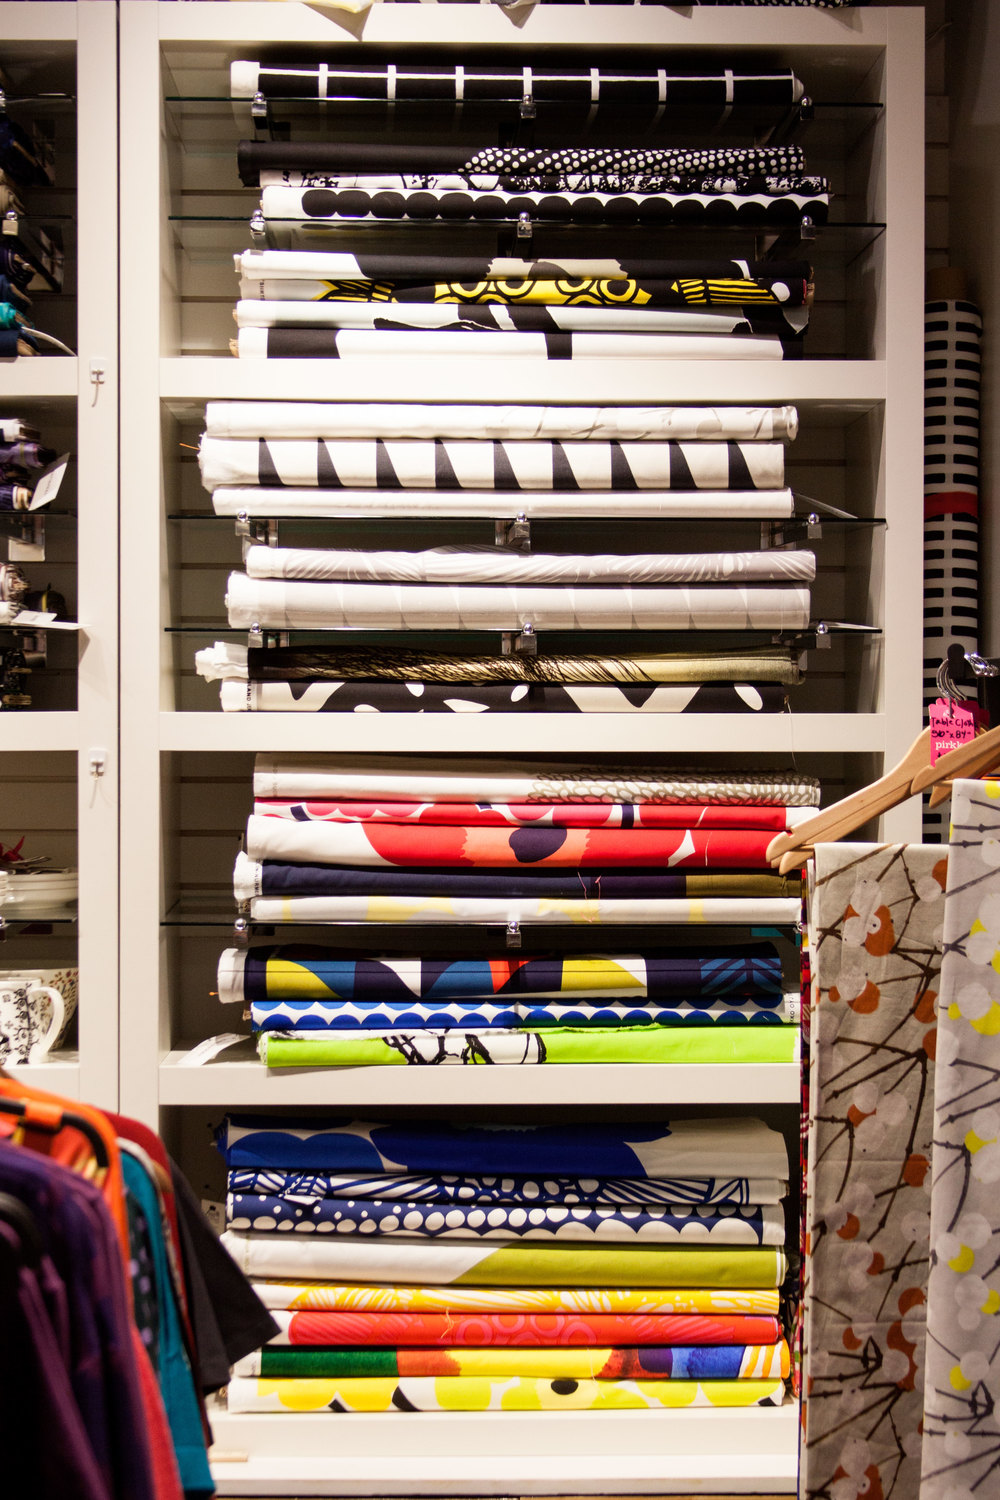 Marimekko apparel, fabric, housewares. Oh, my! Photography by Selena Kearney.